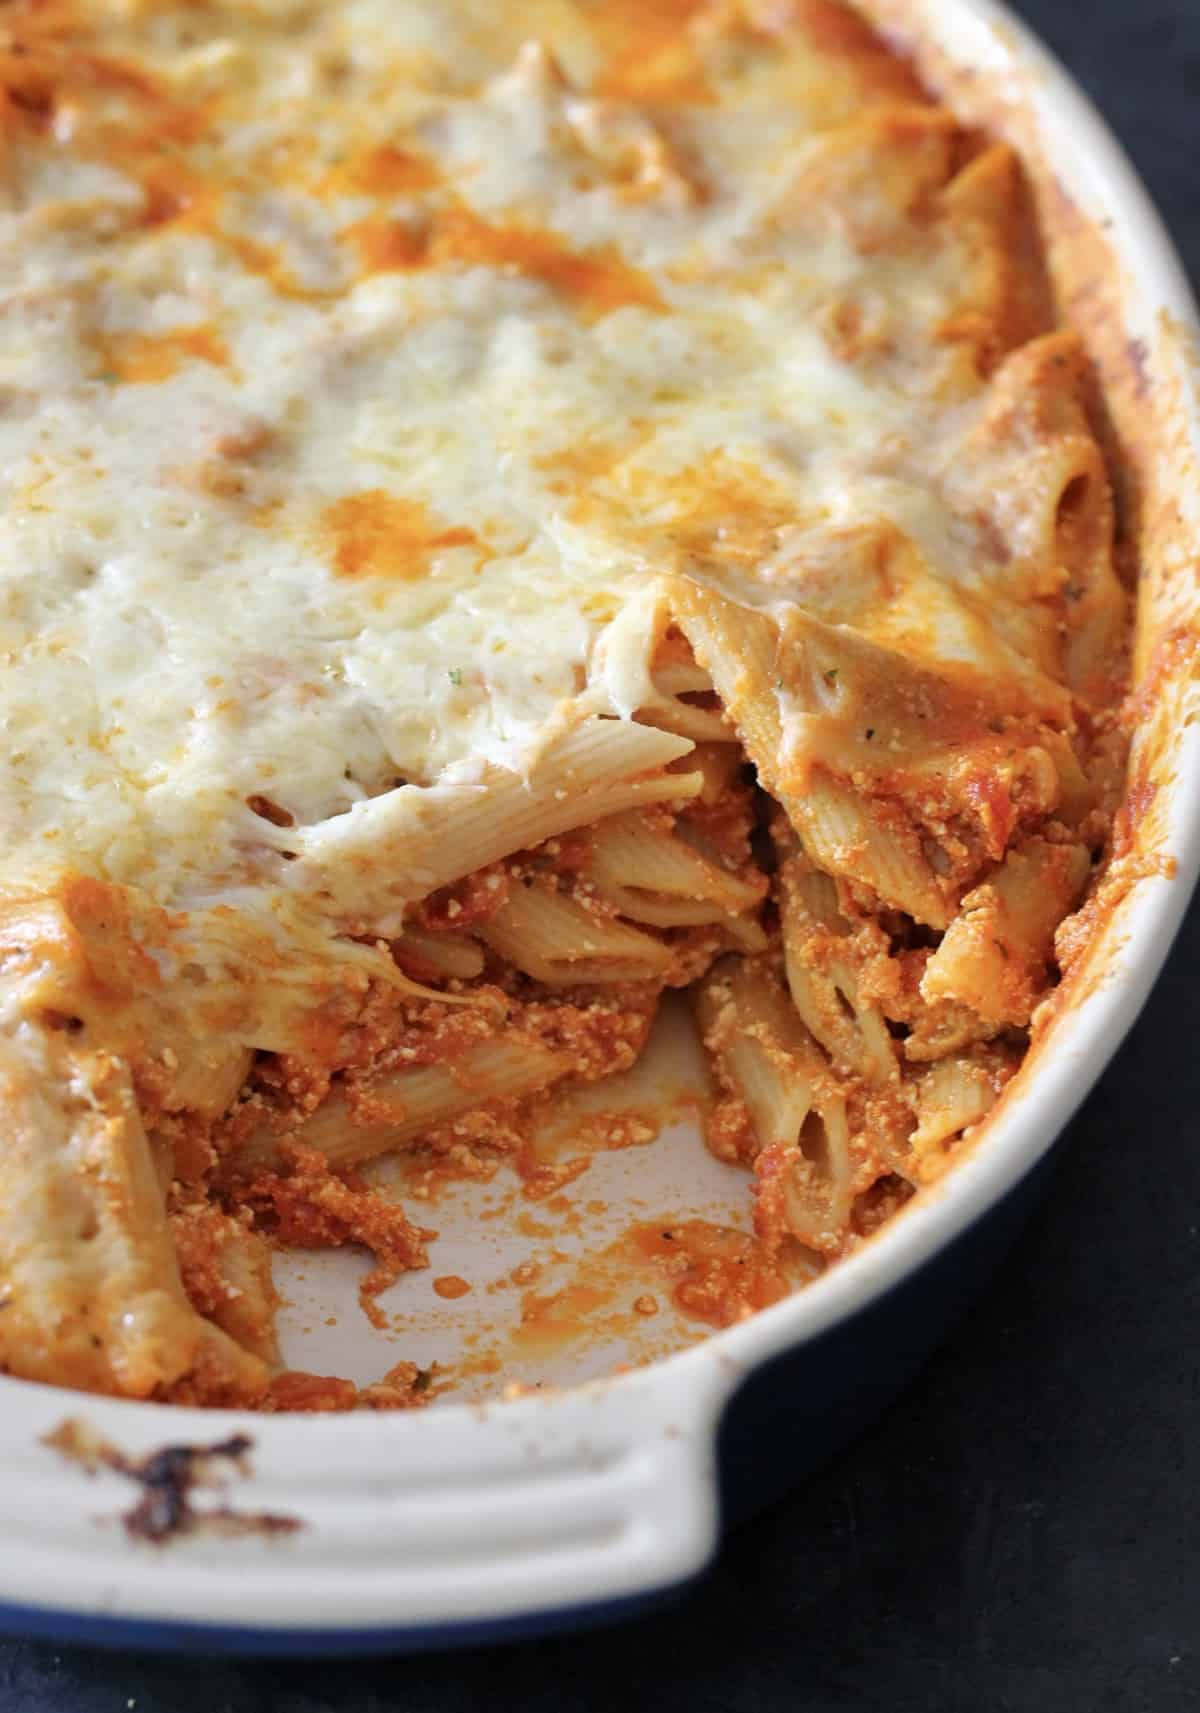 baked ziti with a scoop taken out of it